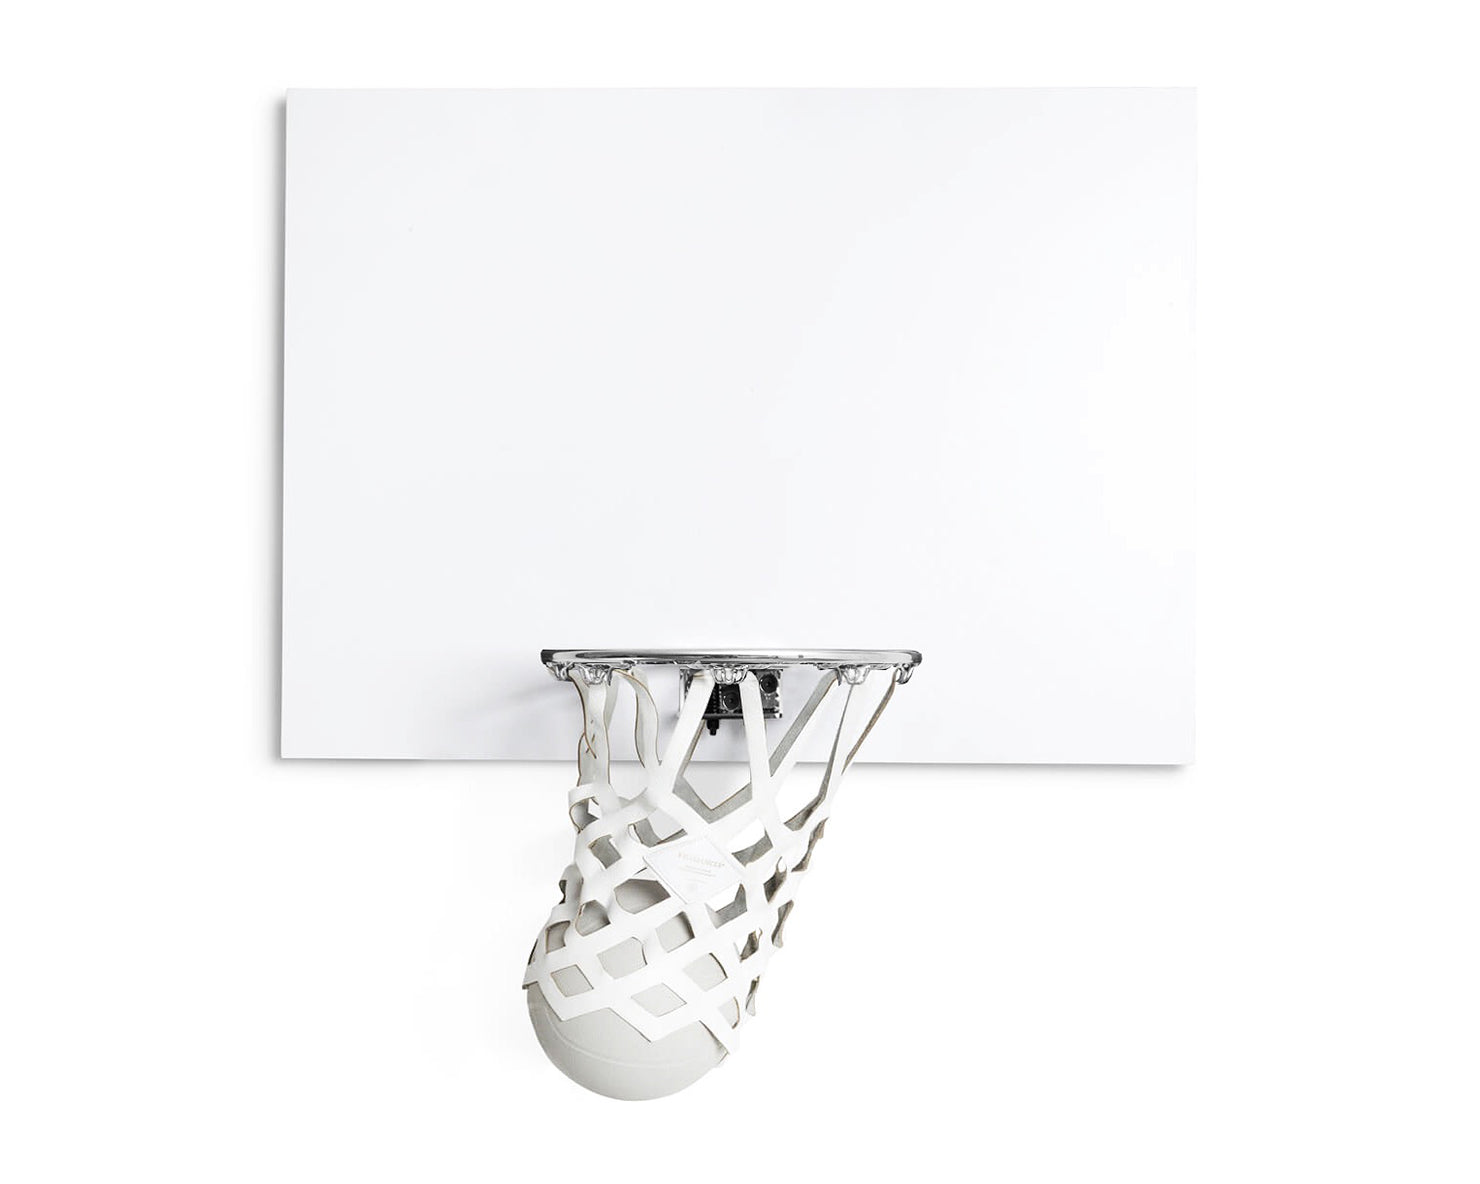 INDOOR MINI BASKETBALL KIT | KILLSPENCER® - Chrome and Matte White